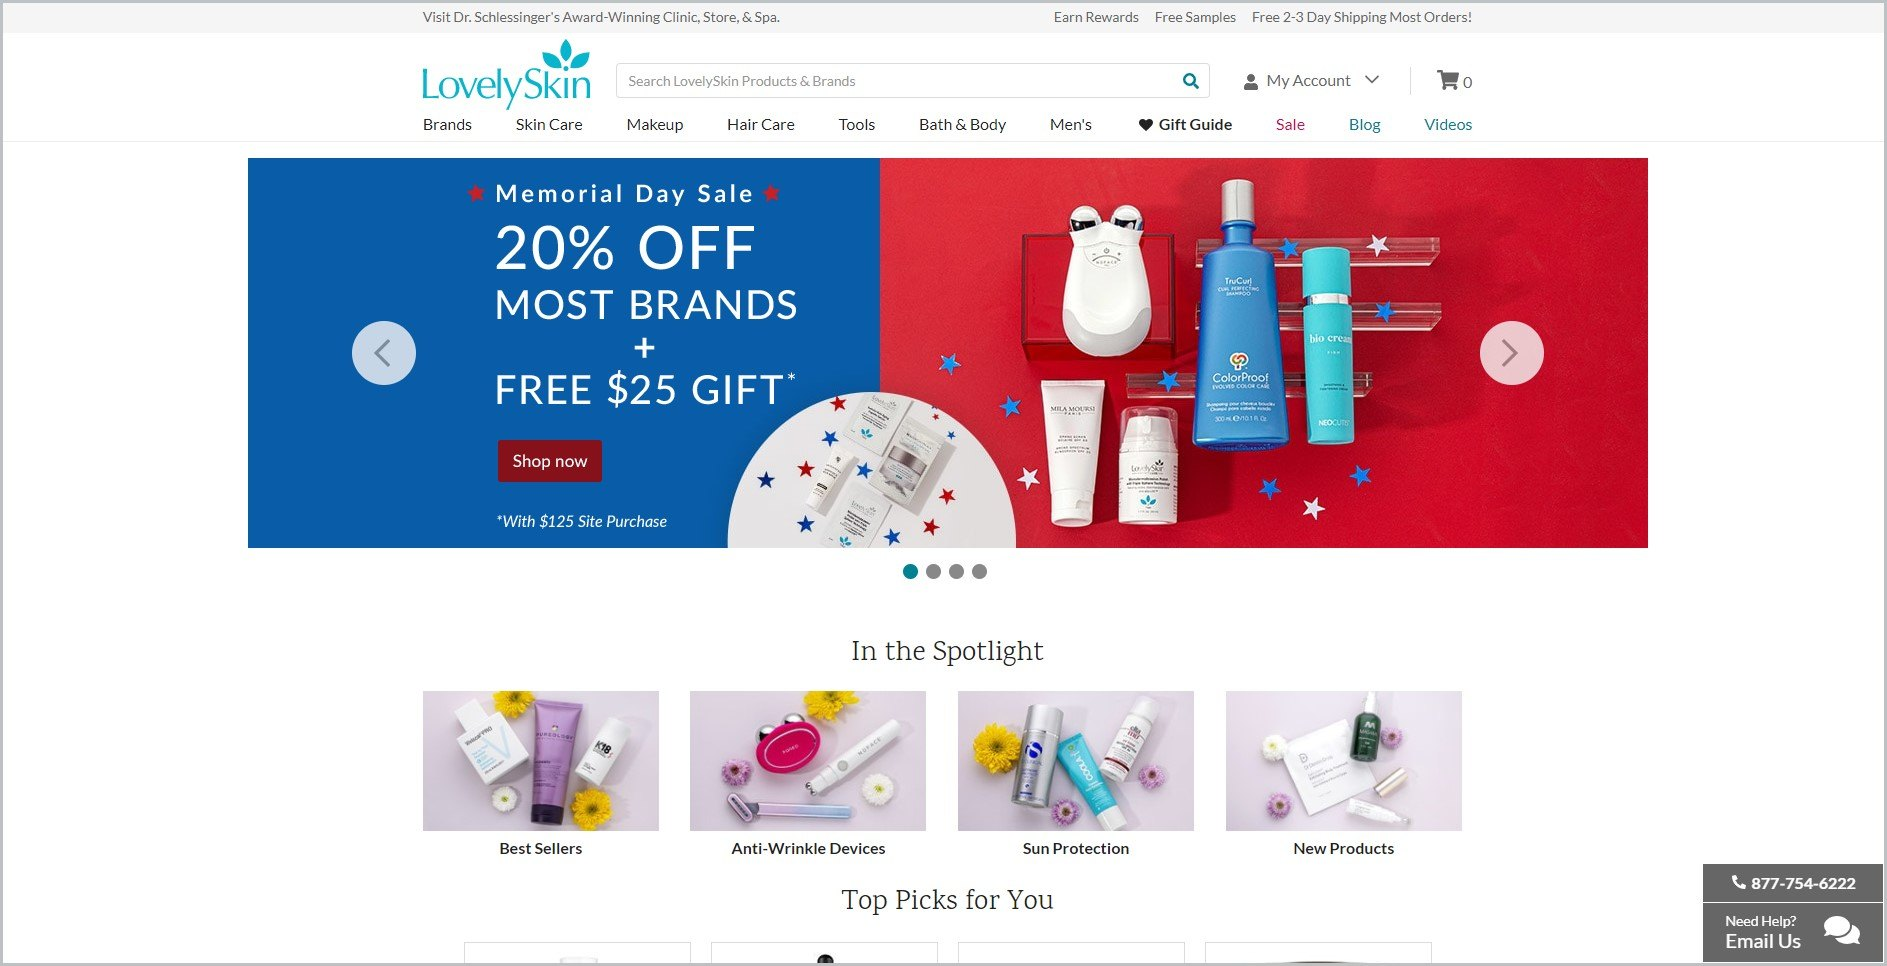 screenshot of LovelySkin homepage, with white header with the website's name and main navigation menu, it also features images of some of their products